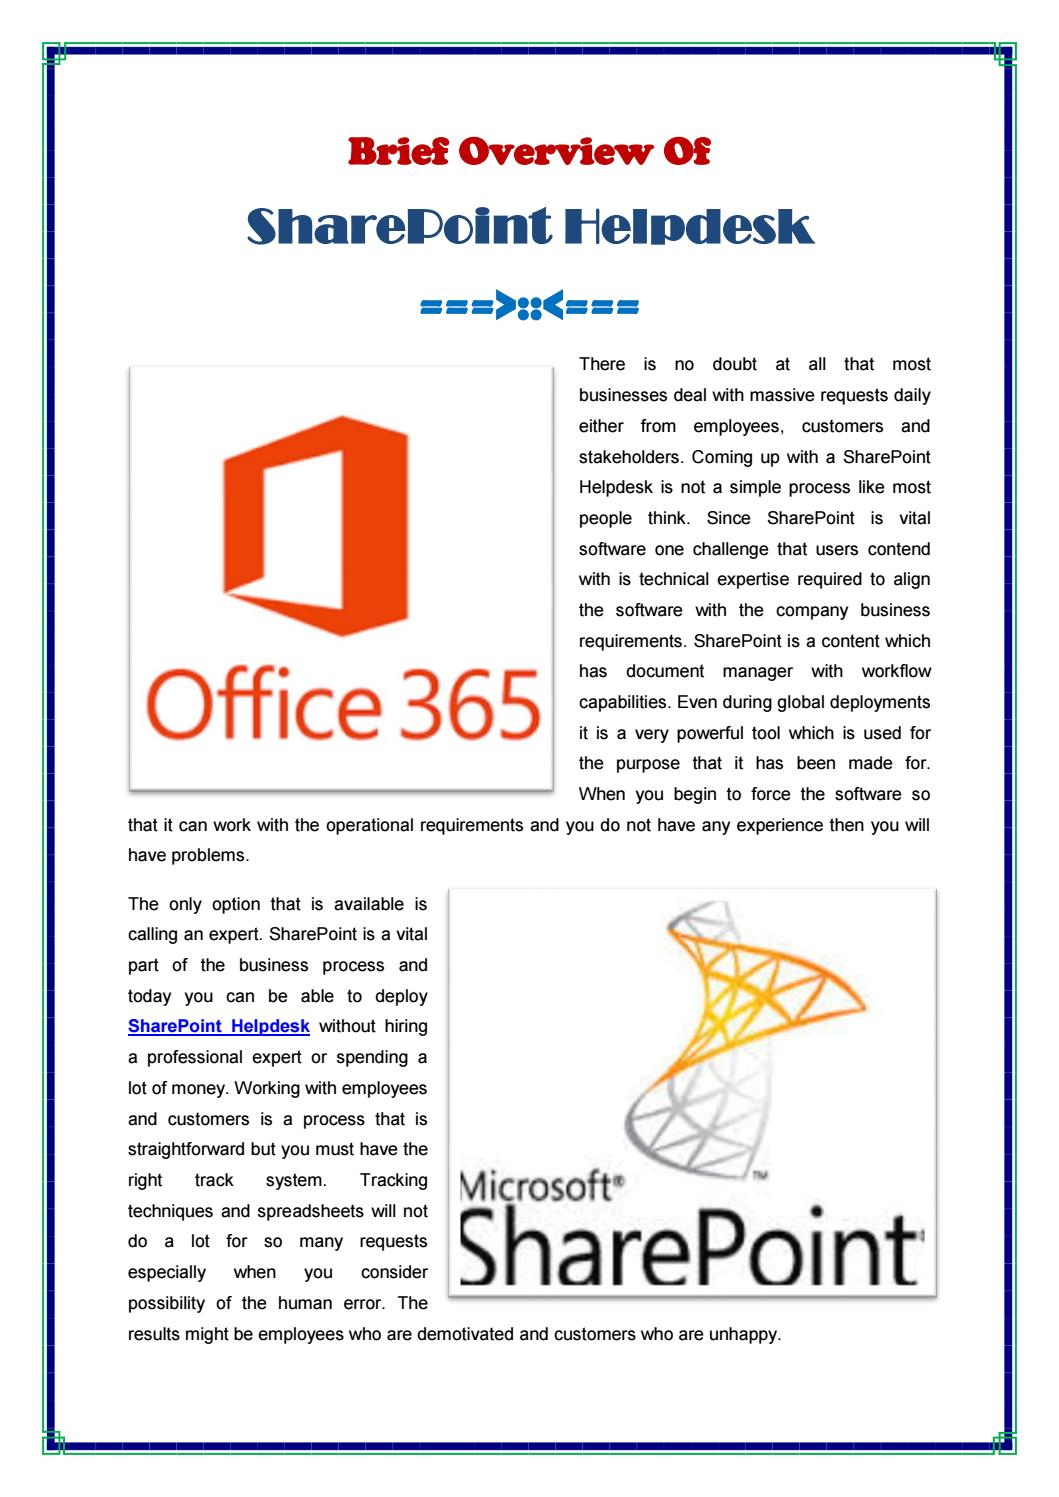 Brief Overview Of Sharepoint Helpdesk By Spjedi Issuu